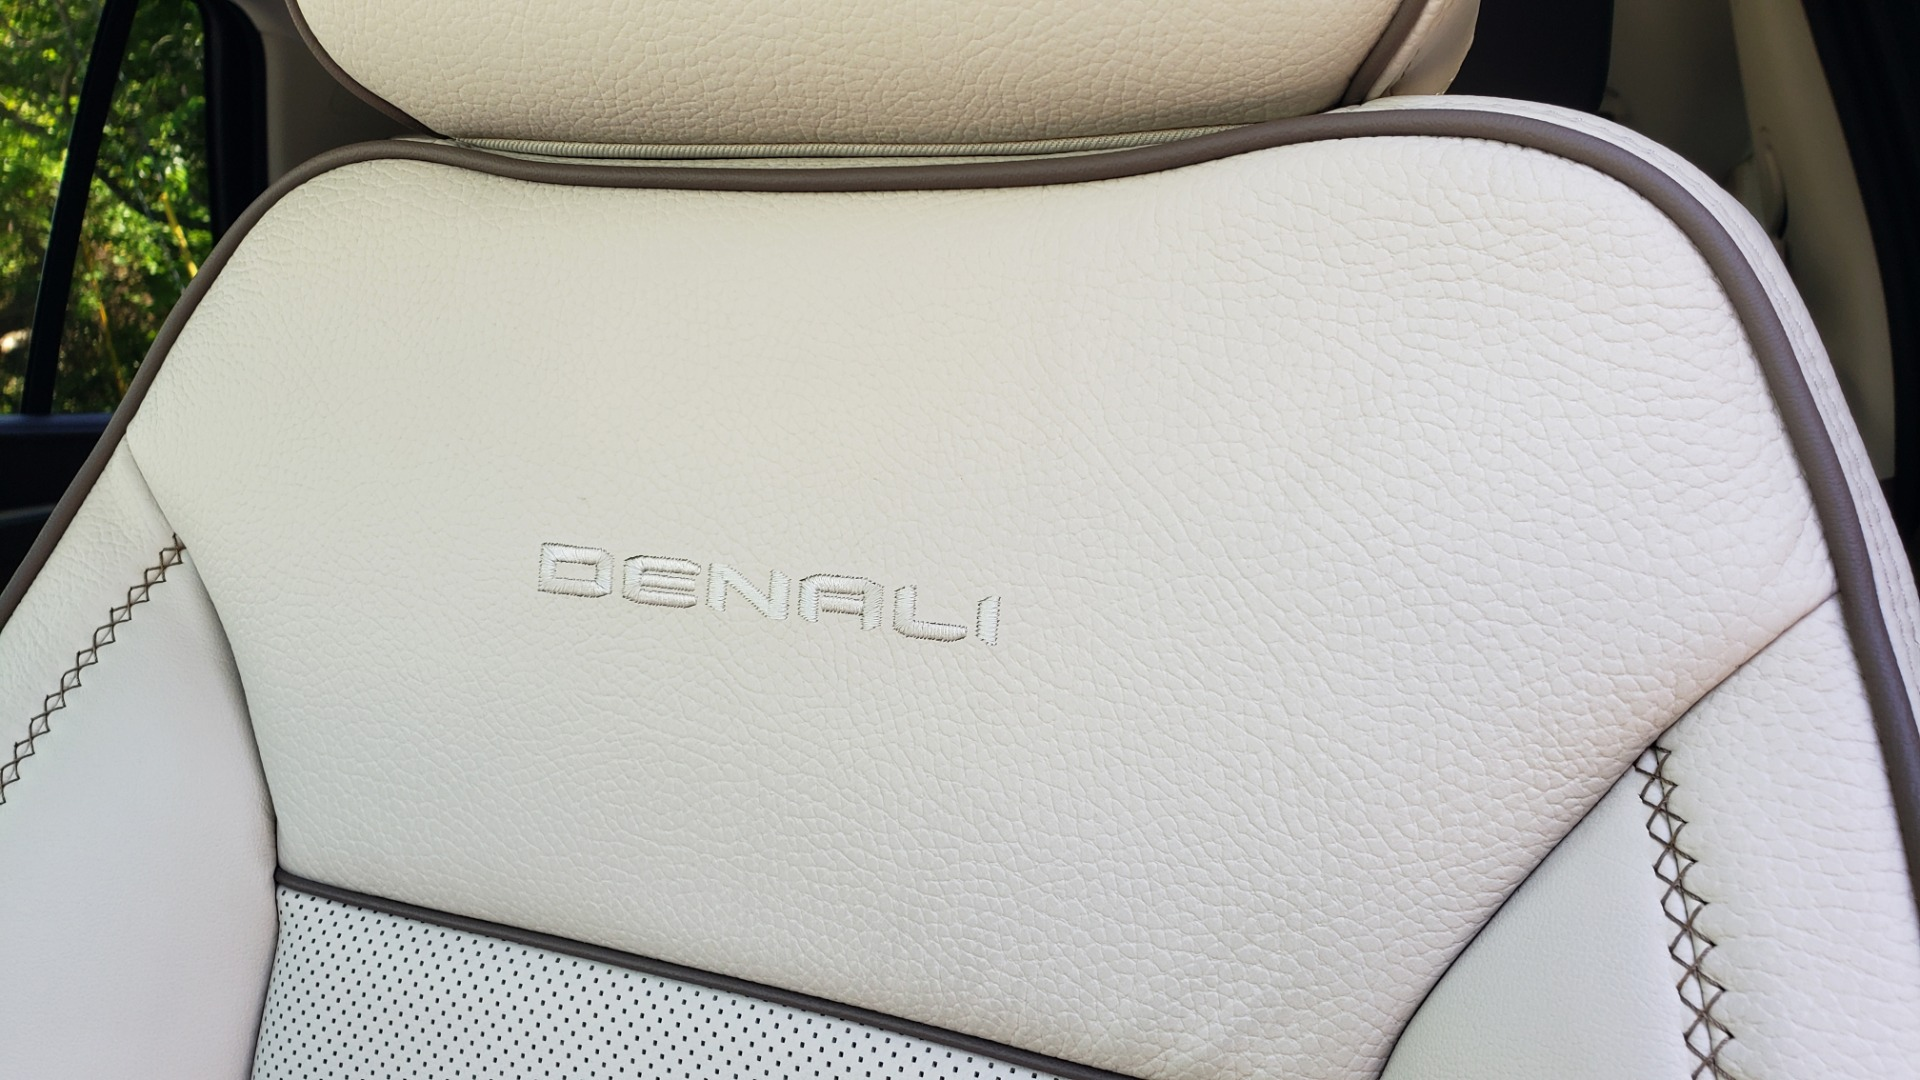 Used 2021 GMC YUKON DENALI PREM / 4WD / NAV / TECH / TRAILER / SECURITY / SUNROOF for sale Sold at Formula Imports in Charlotte NC 28227 51